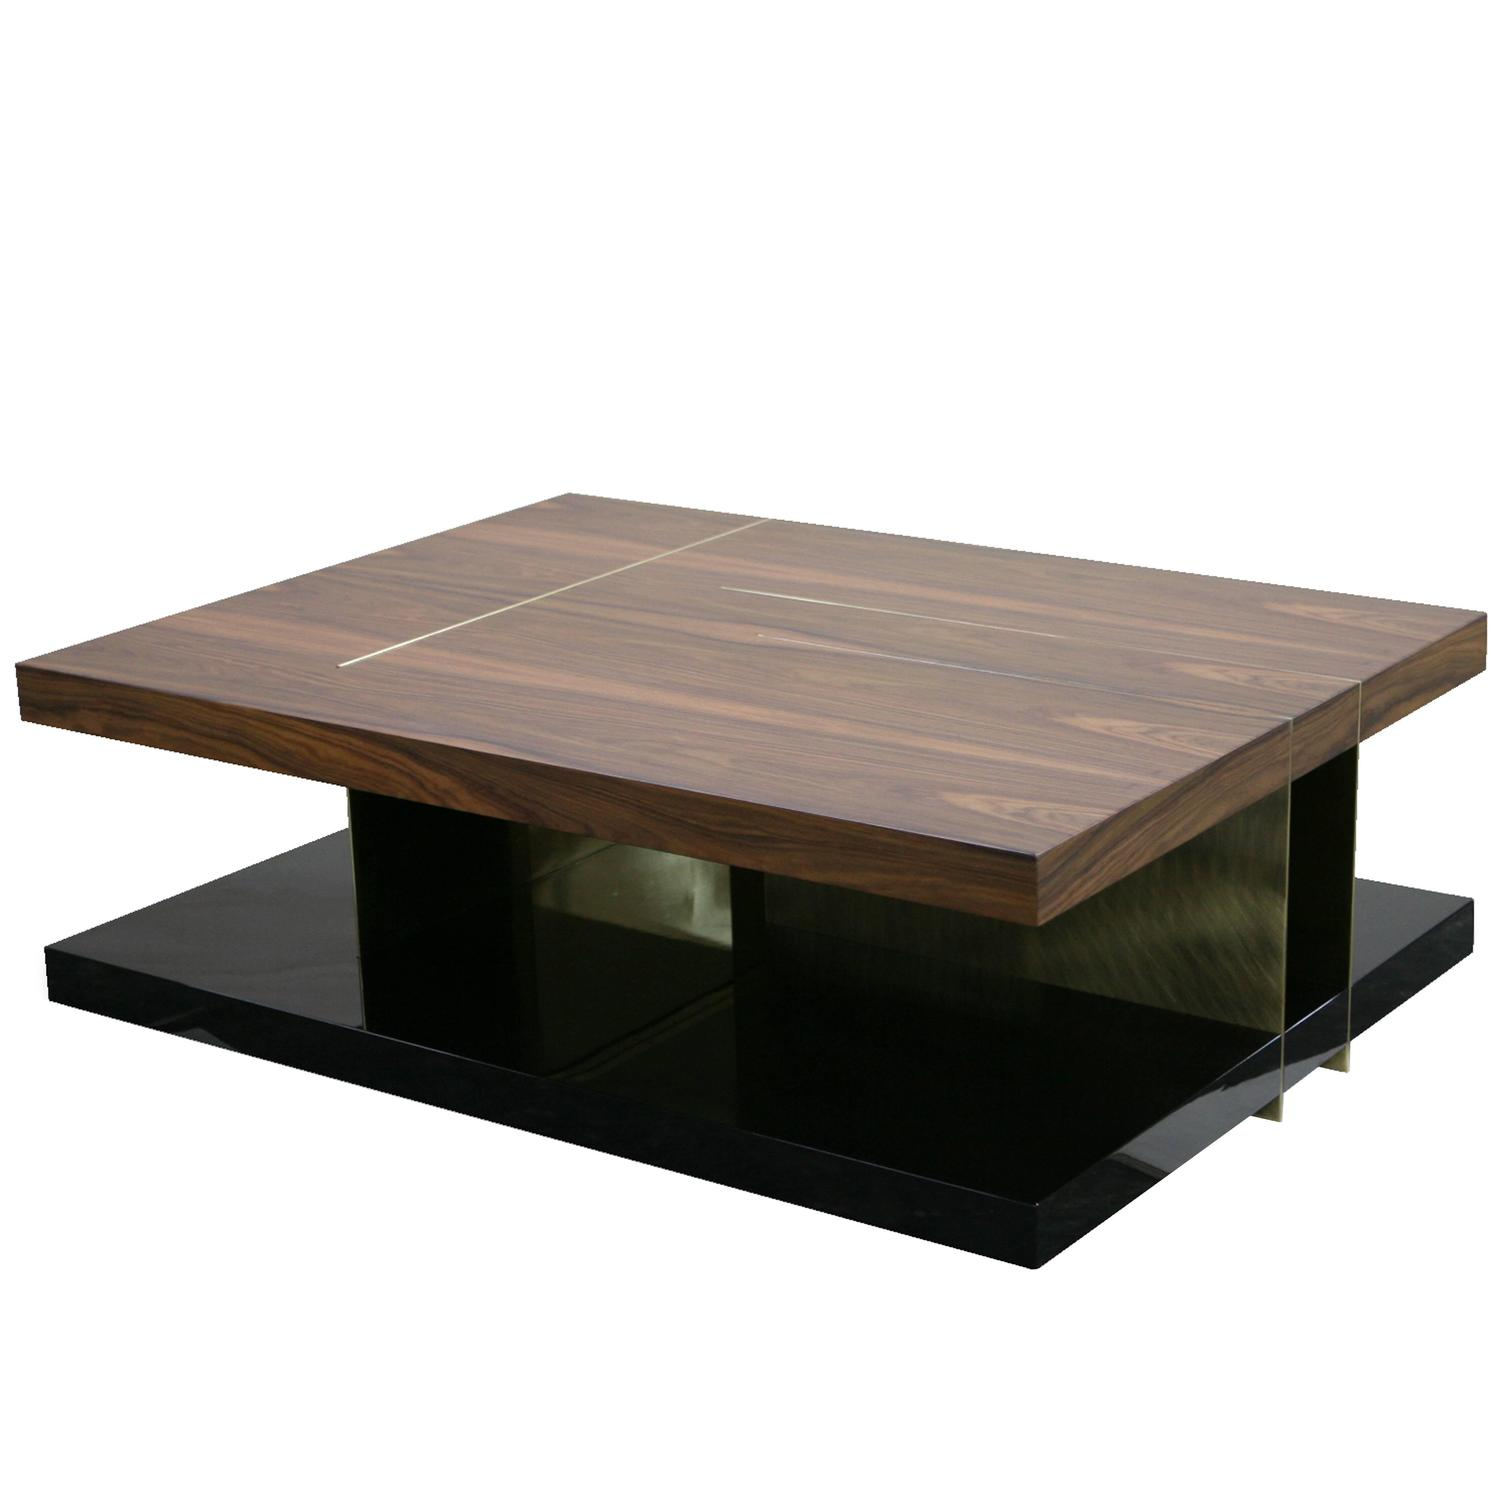 European Modern Timber Lacquer Brass Rectangular Lallan Coffee Table By Brabbu For Sale At 1stdibs